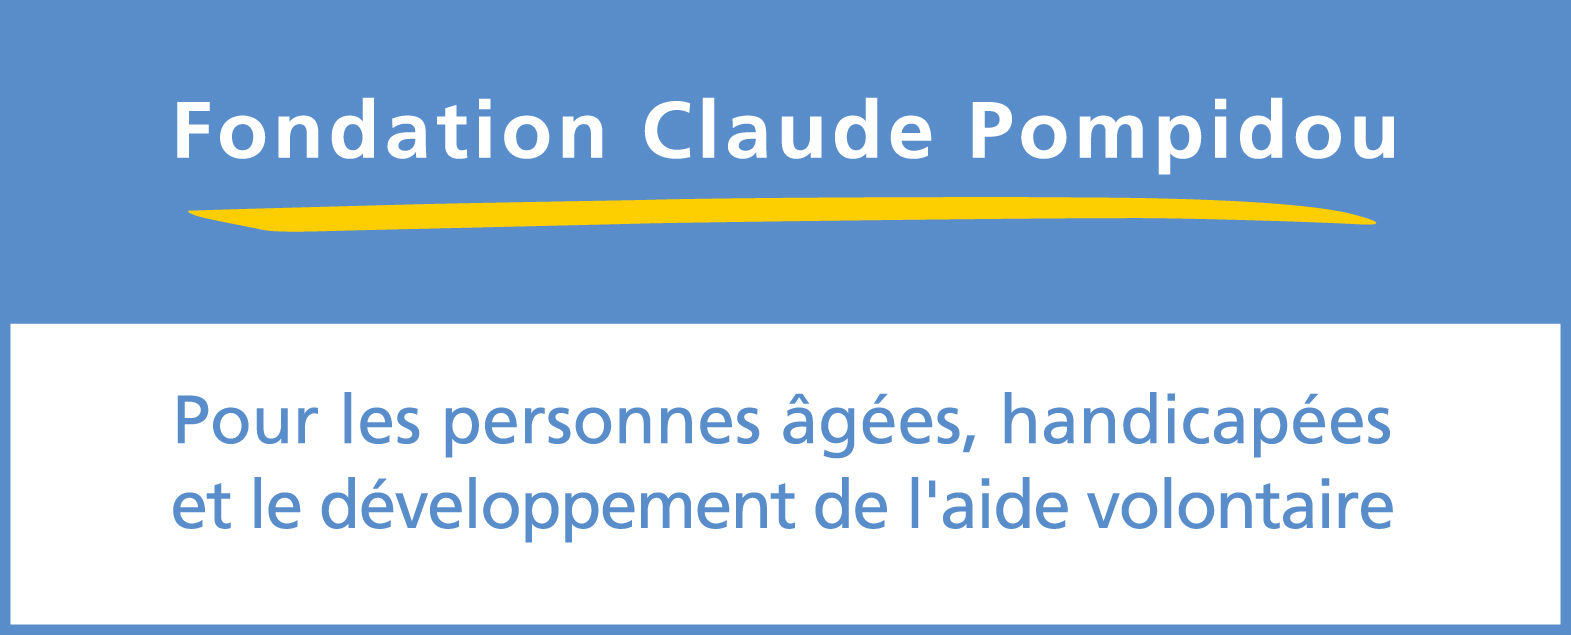 FONDATION CLAUDE POMPIDOU